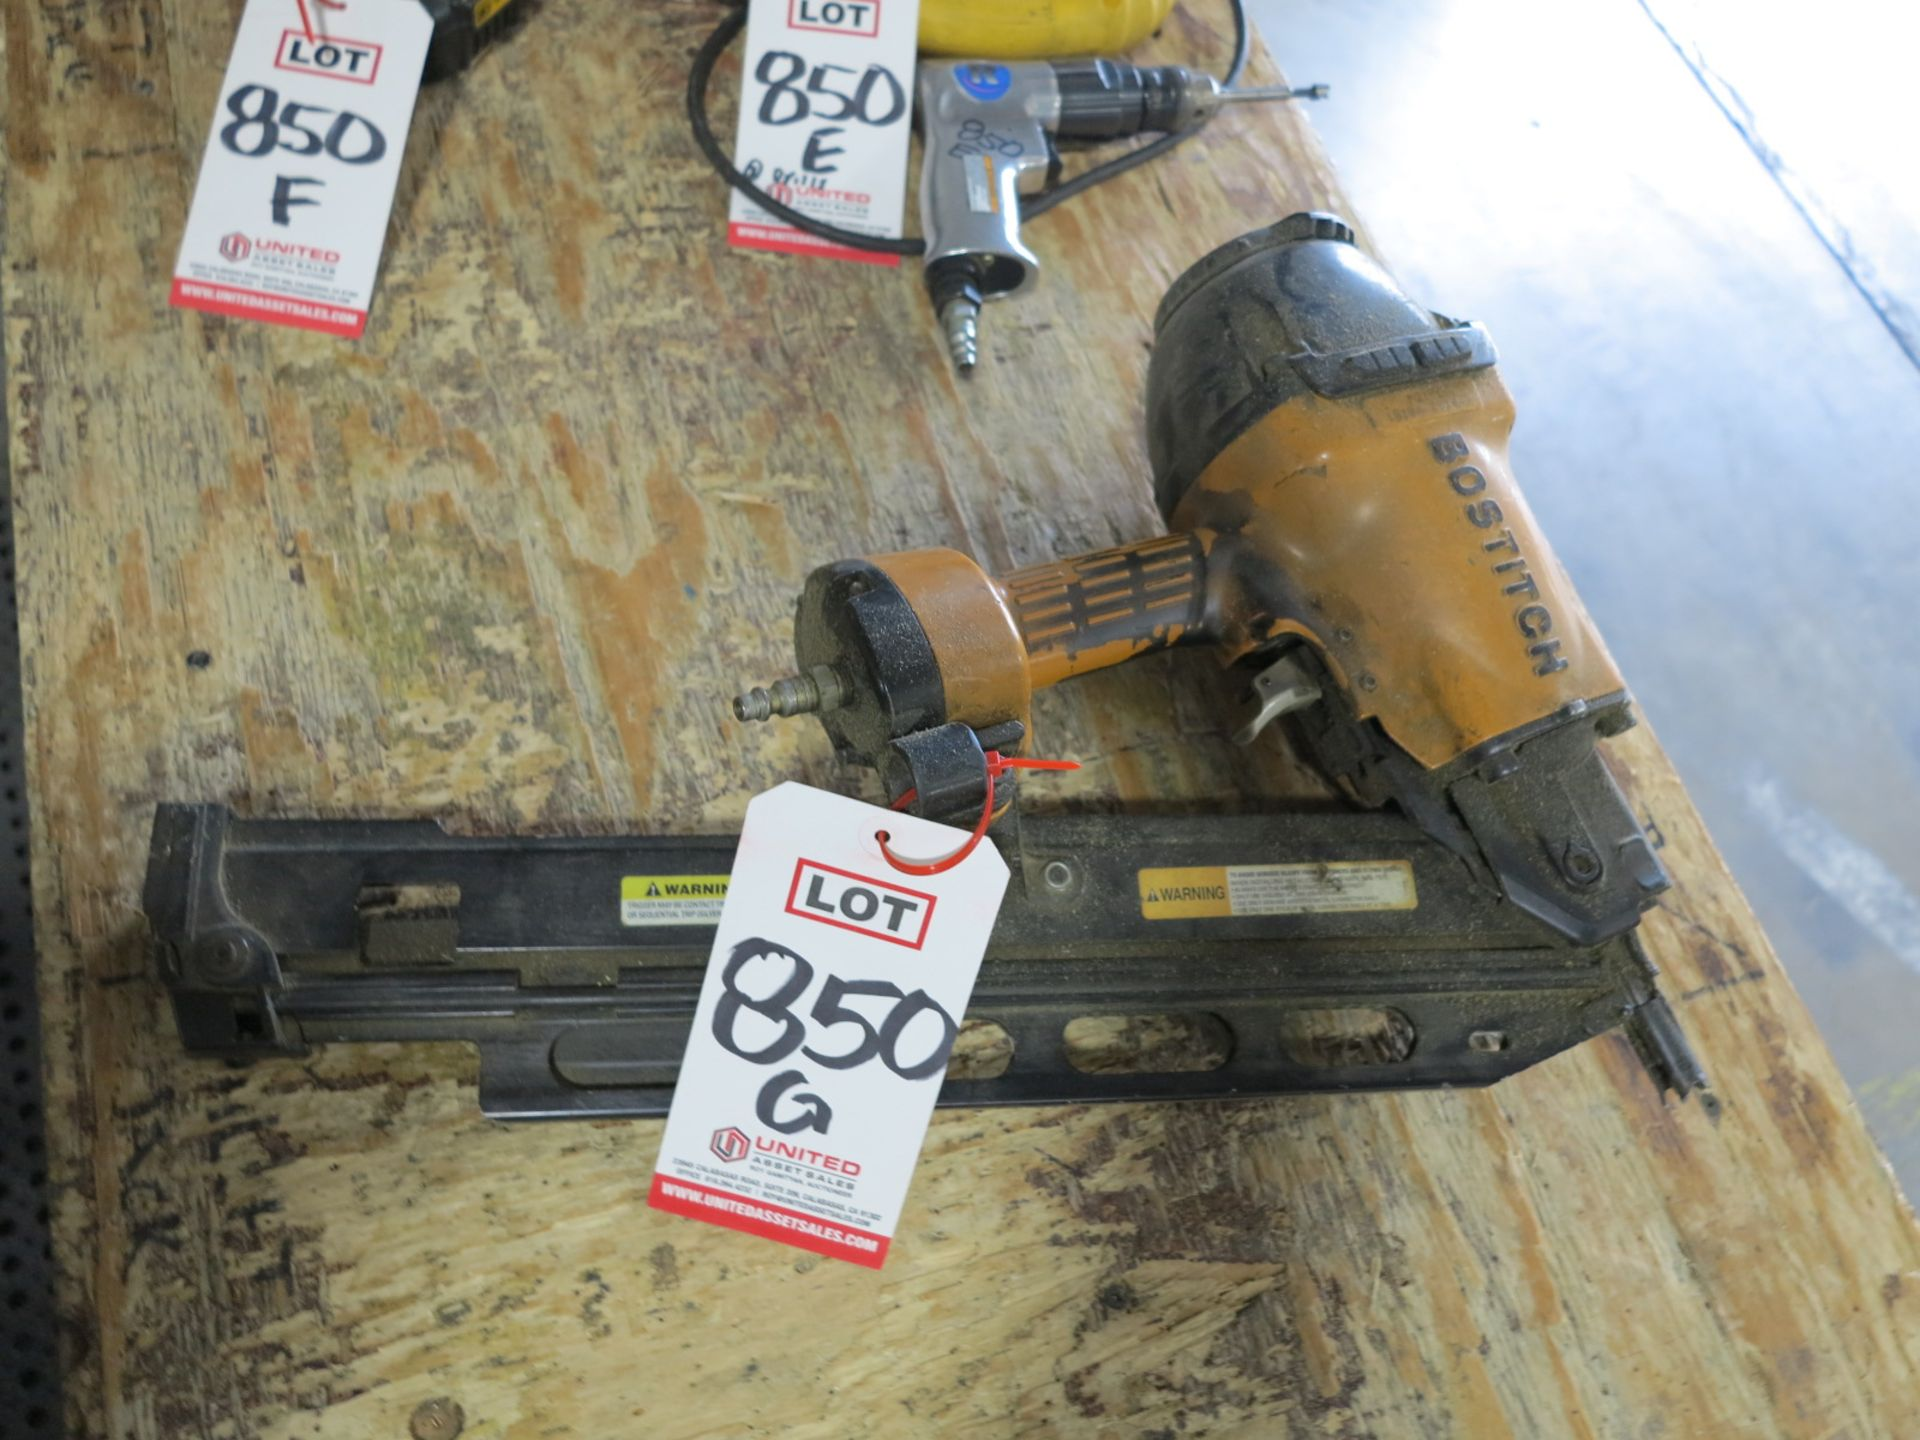 Lot 850G - BOSTITCH F21PL PNEUMATIC FRAMING NAILER